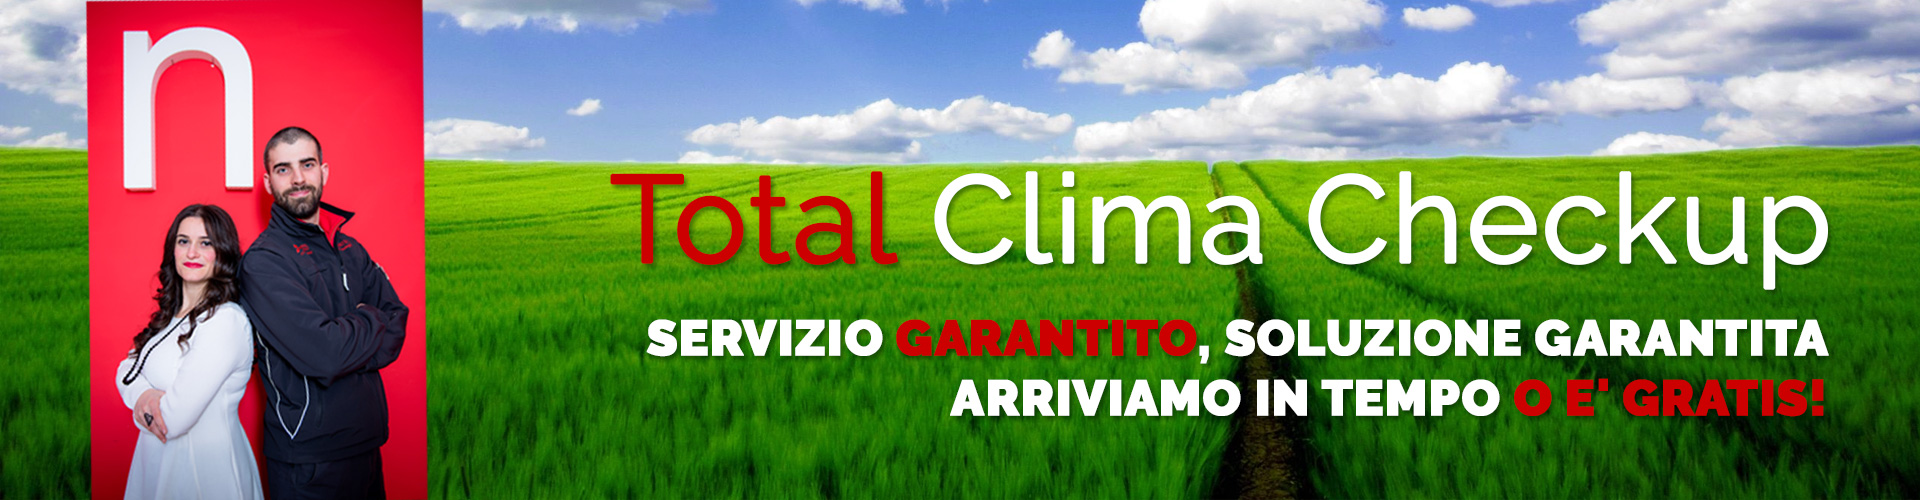 total clima checkup novatec